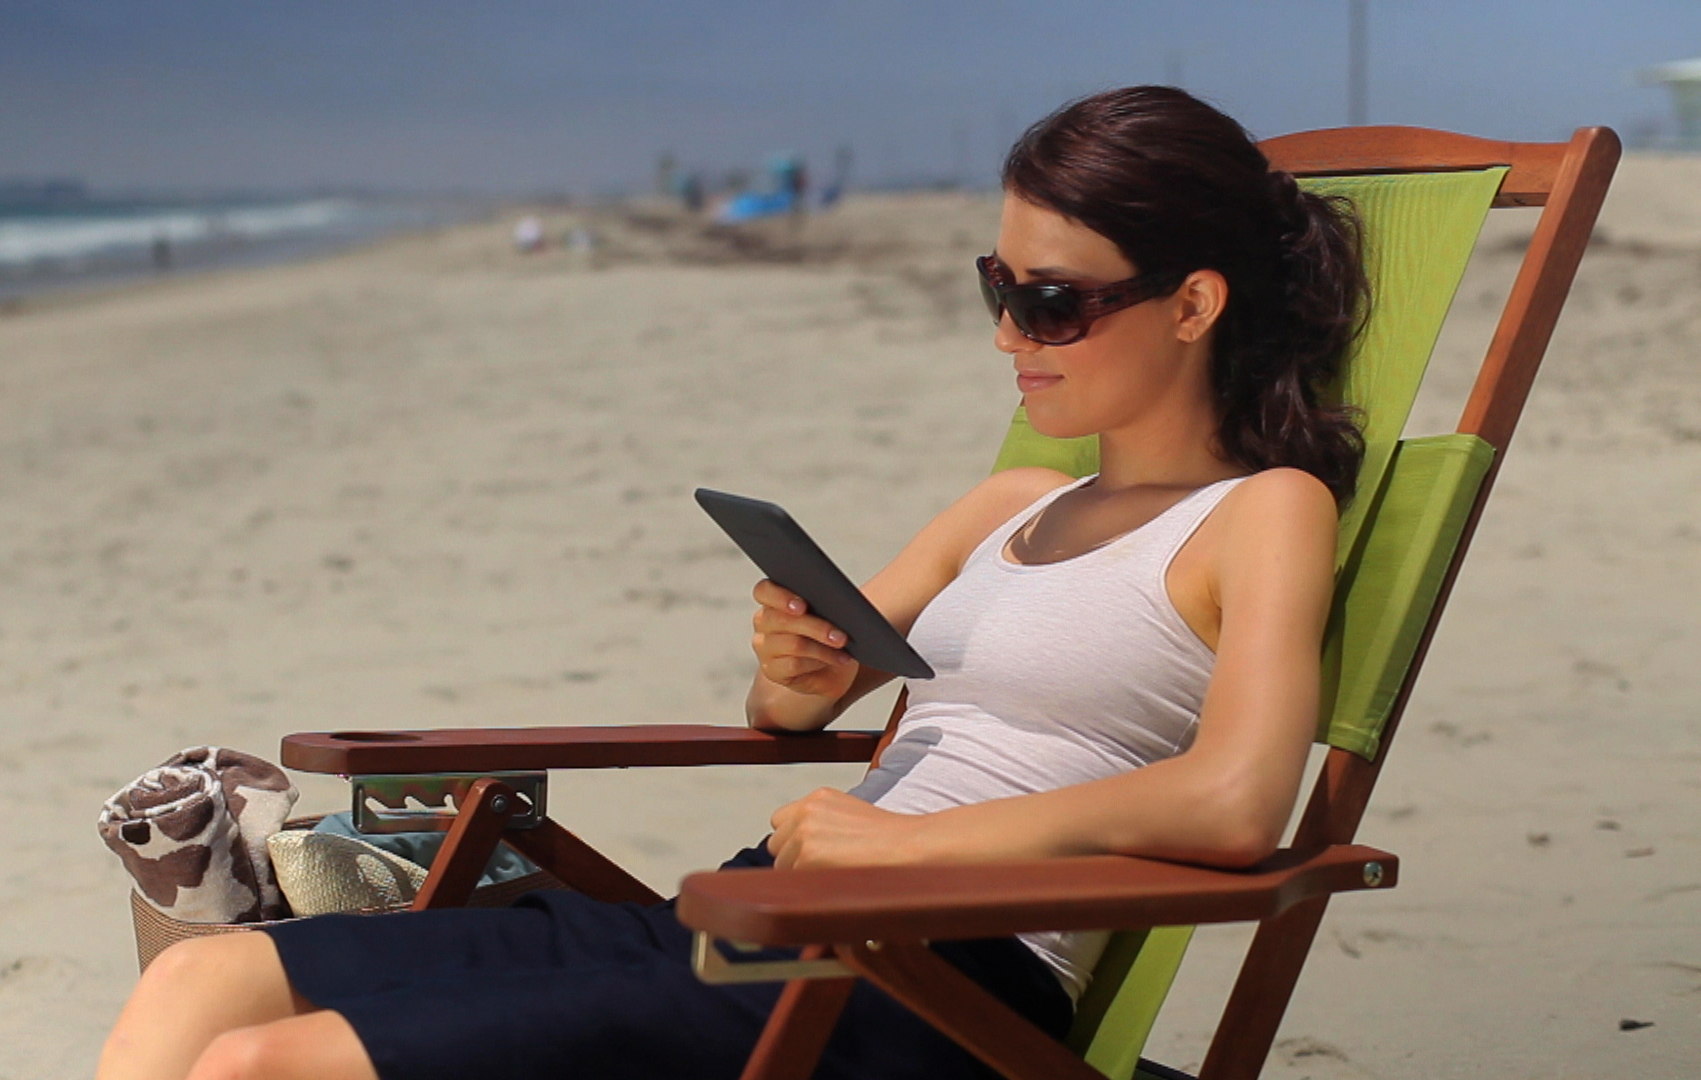 Kindle at beach